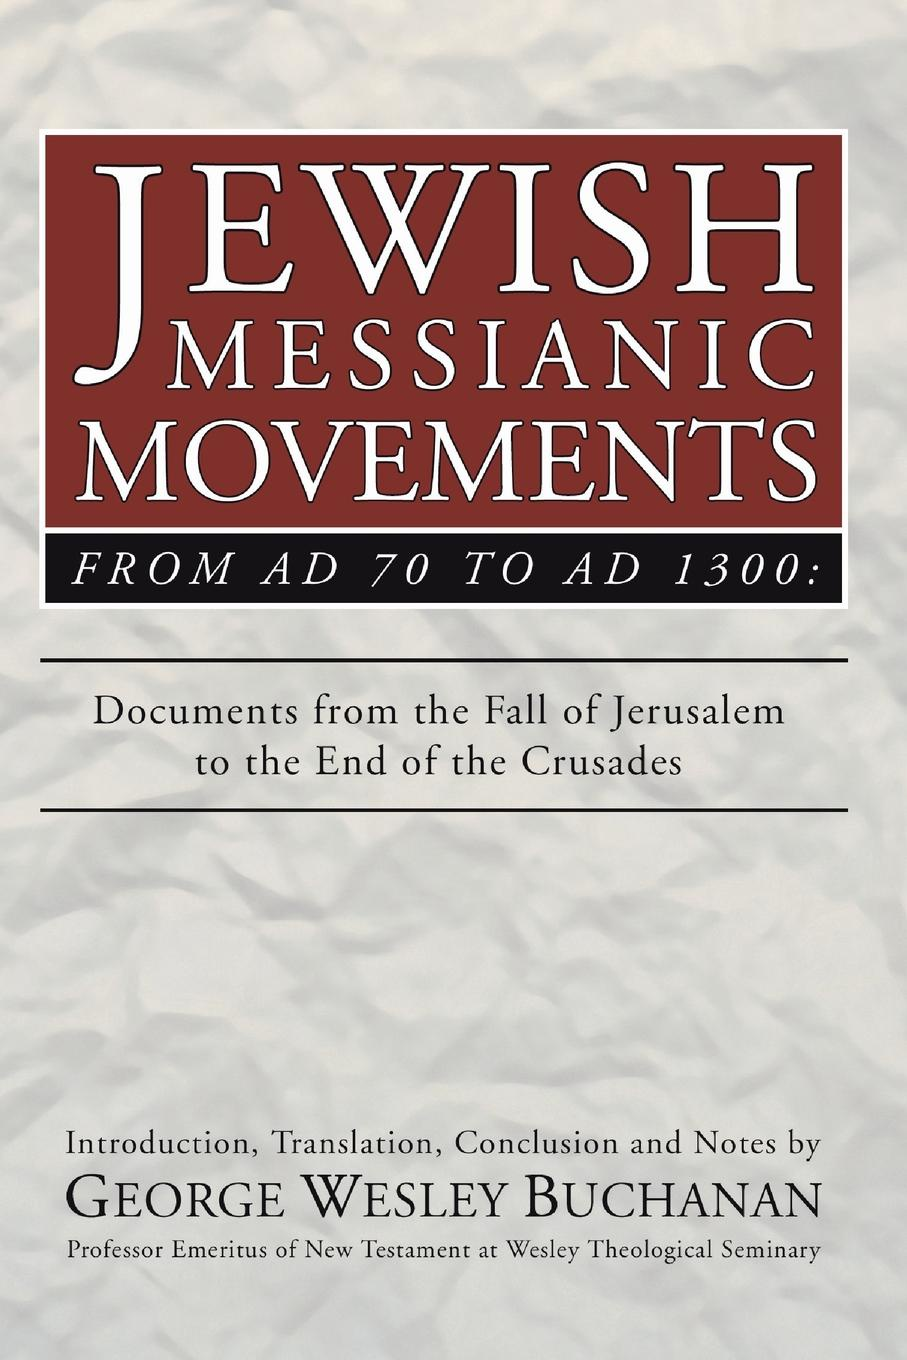 George W. Buchanan Jewish Messianic Movements from Ad 70 to 1300. Documents the Fall of Jerusalem End Crusades